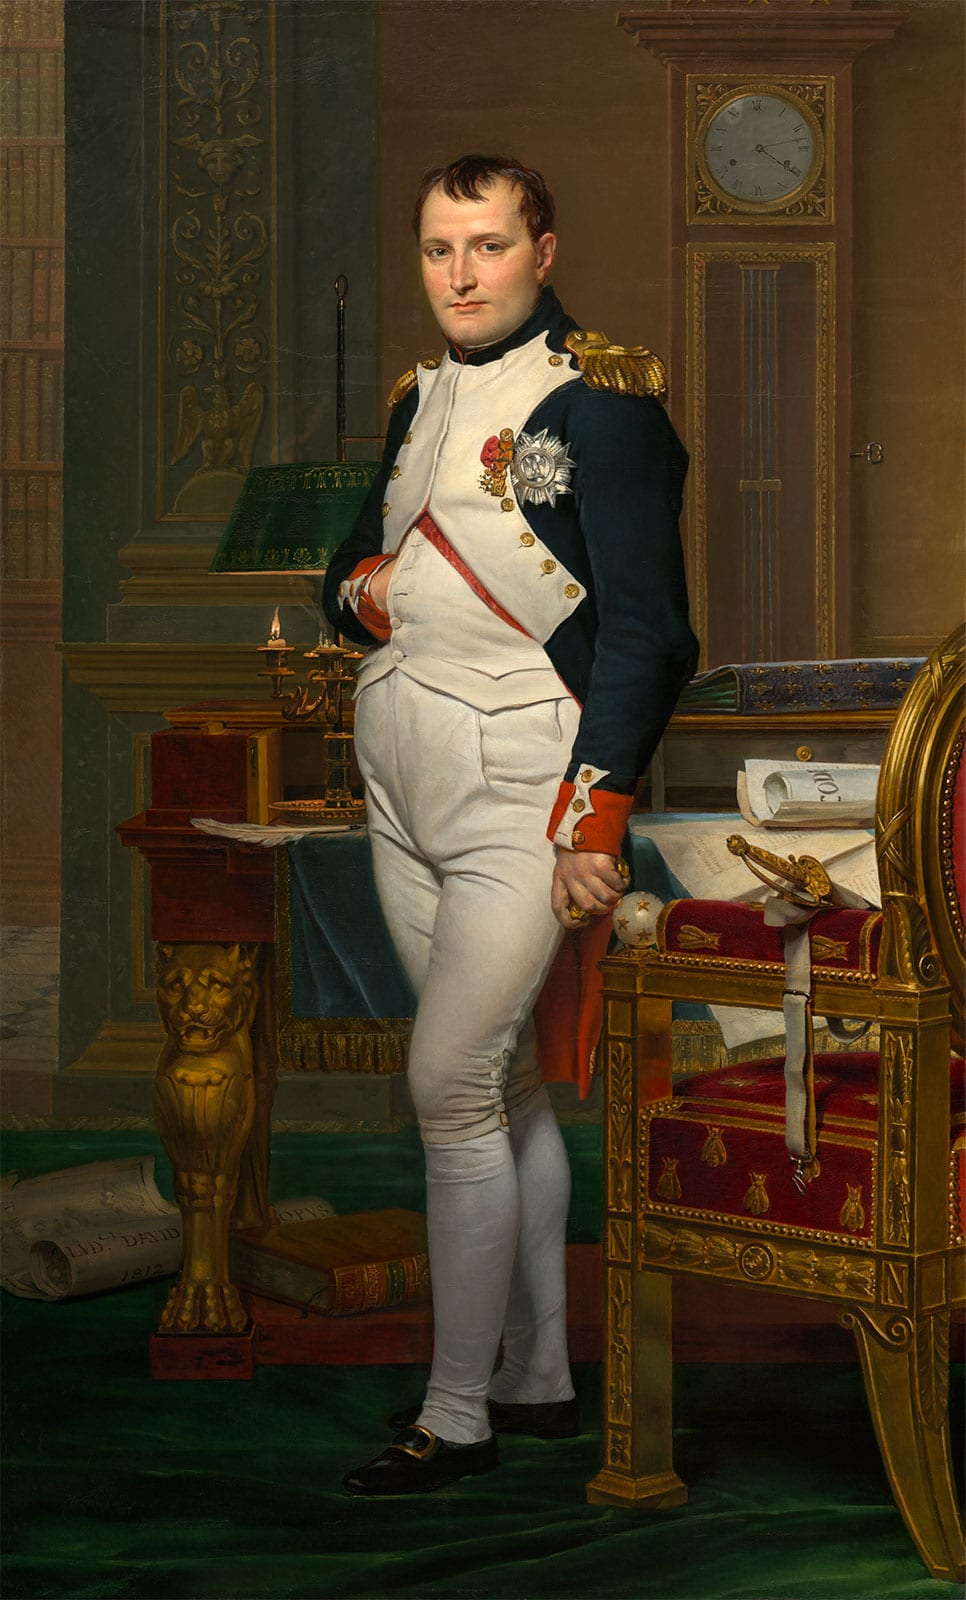 c4d64b6bfe26d560f64f6594b38b9030 2 - No Napoleon Complex: Alan Schom's Critical View of the French Emperor